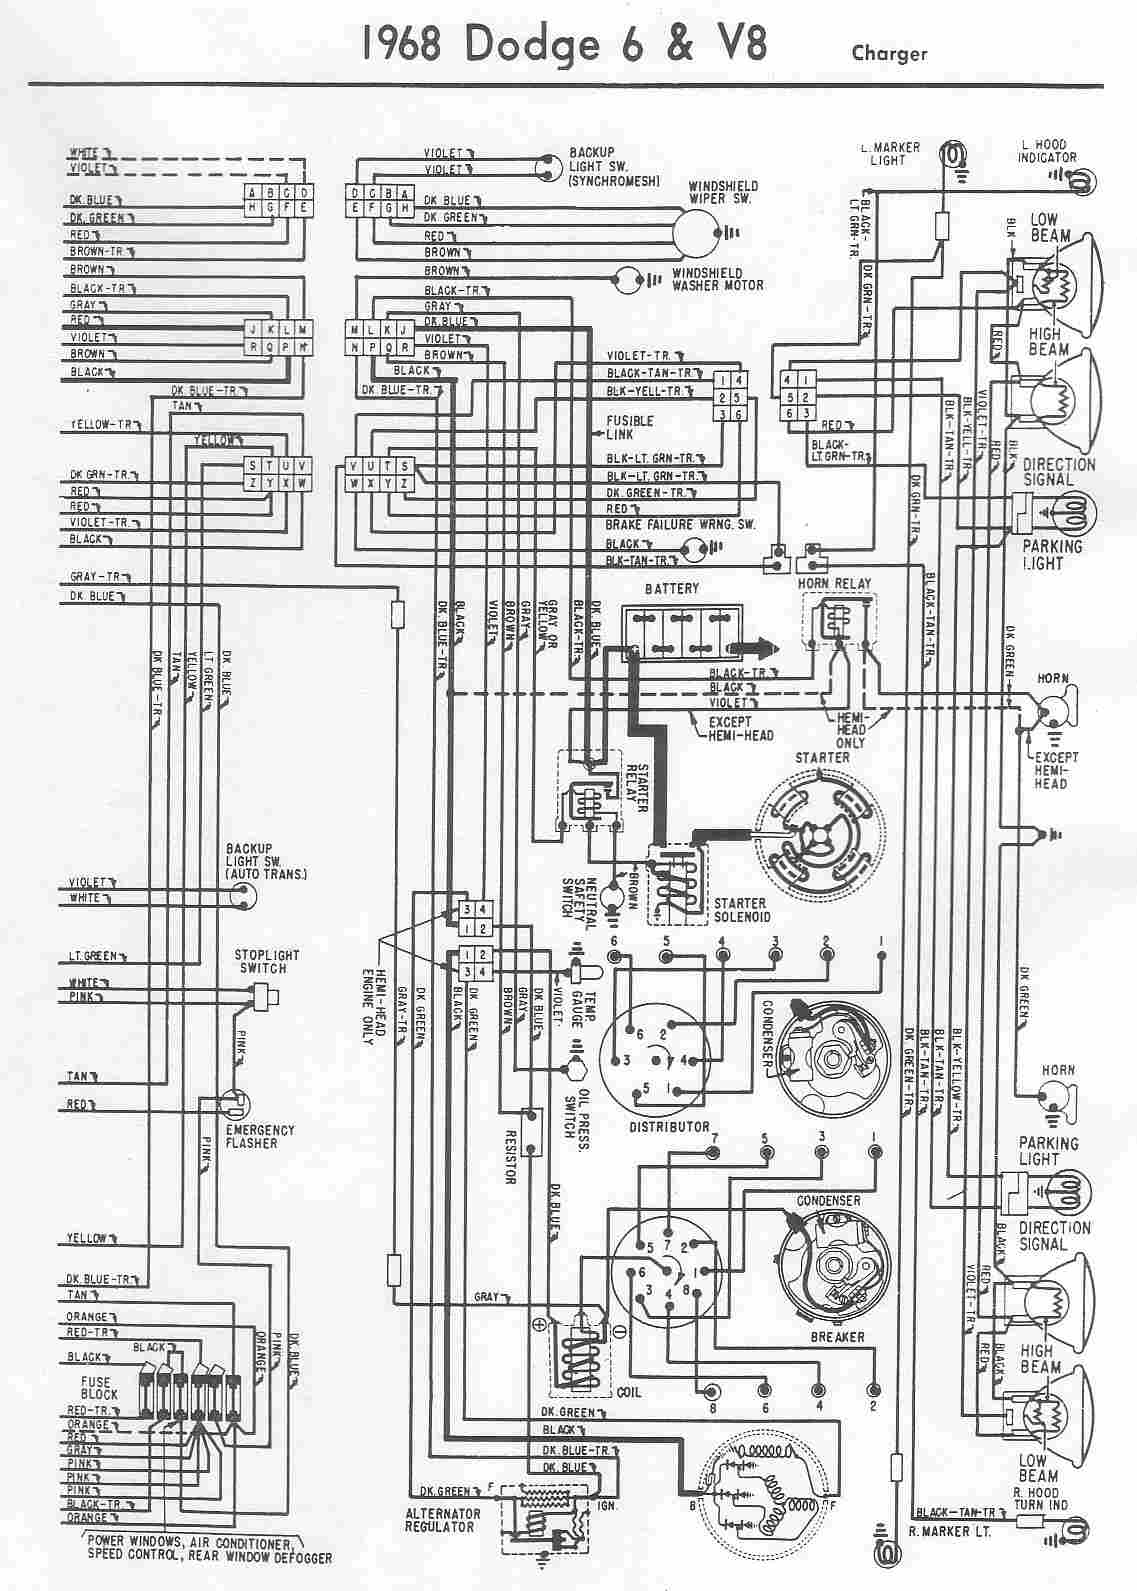 medium resolution of 1966 dodge dart ignition wiring diagram wiring diagram source rh 13 1 2 logistra net de 1972 dodge challenger ignition wiring diagram 1972 dodge dart demon